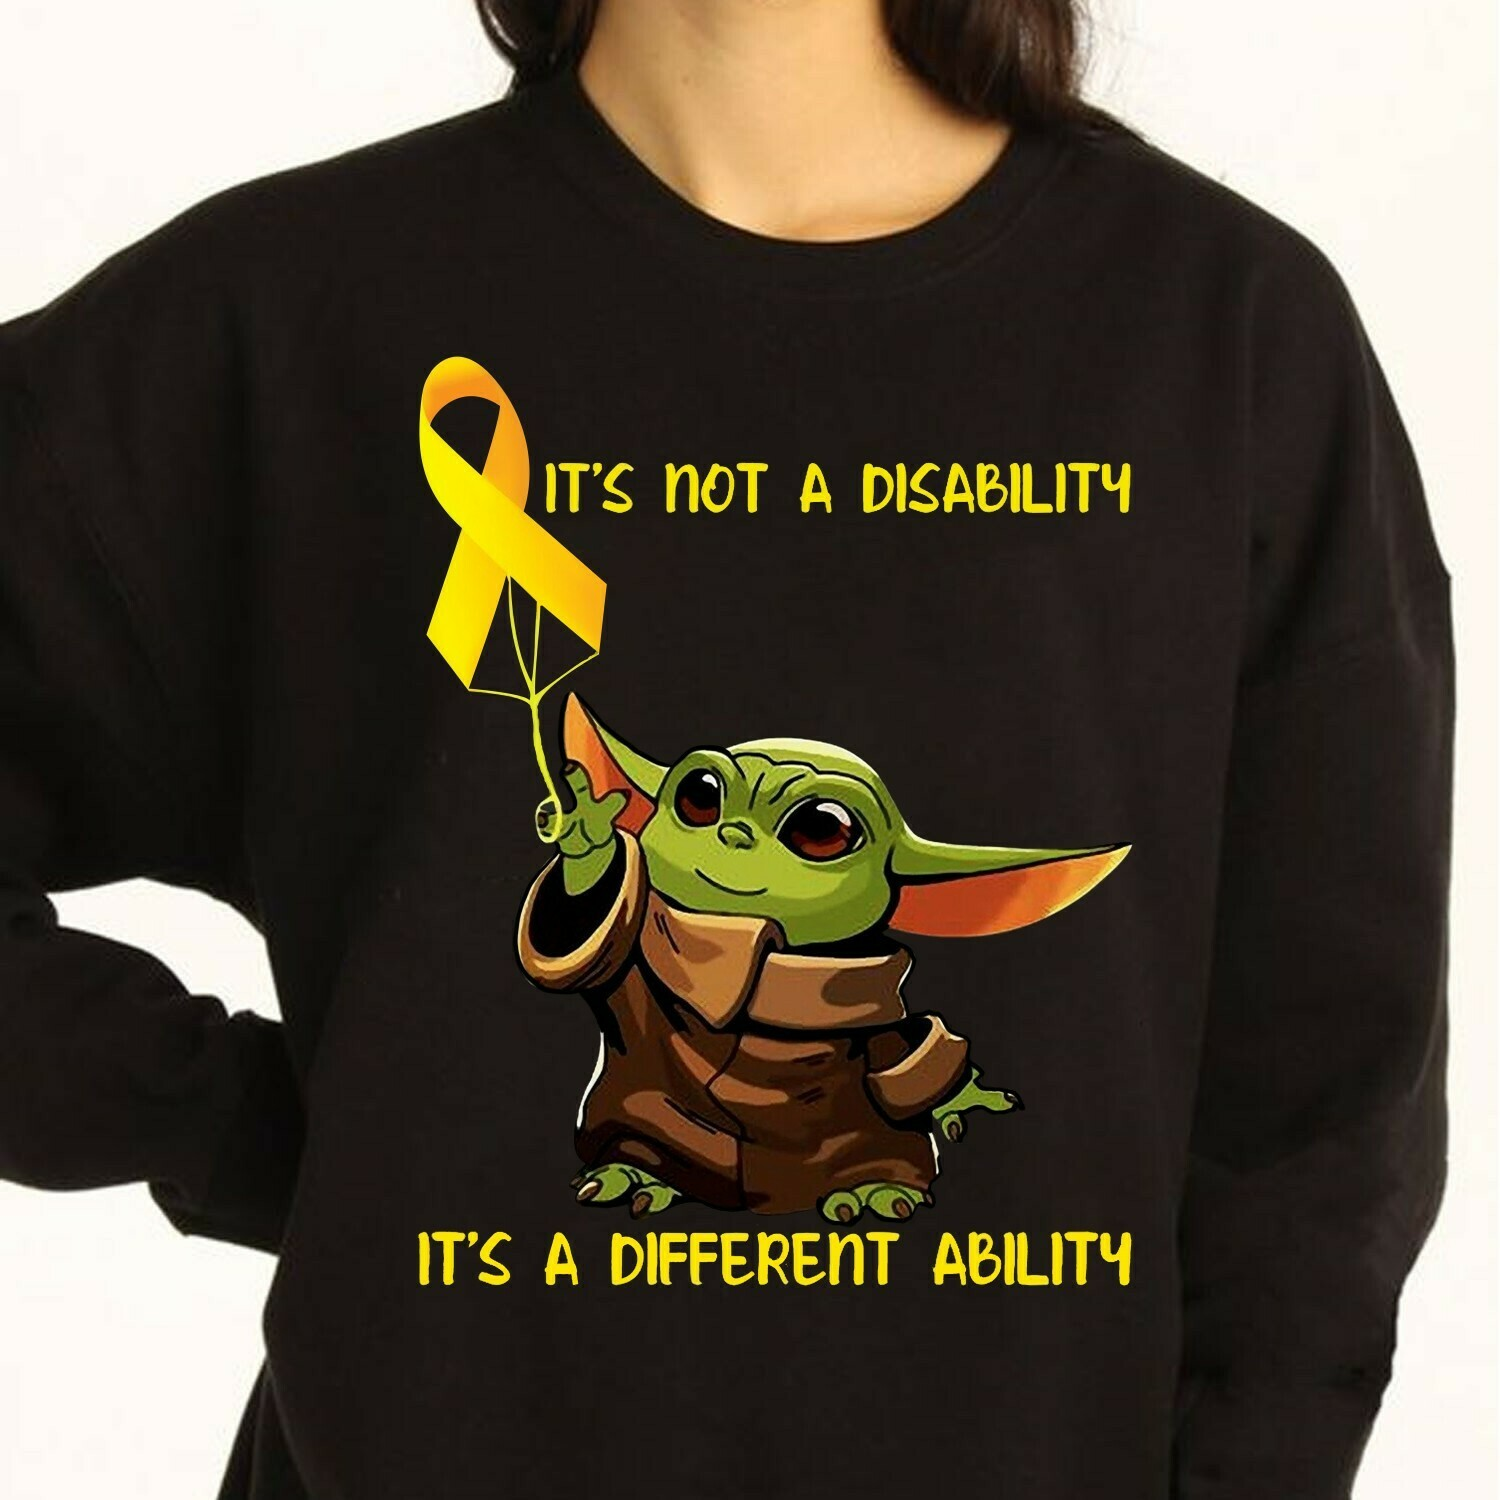 Baby Yoda Autism it's not a disability it's a different ability,Star Wars Mandalorian In A World You Can Be Anything Be Kind T Shirt Long Sleeve Sweatshirt Hoodie Jolly Family Gifts